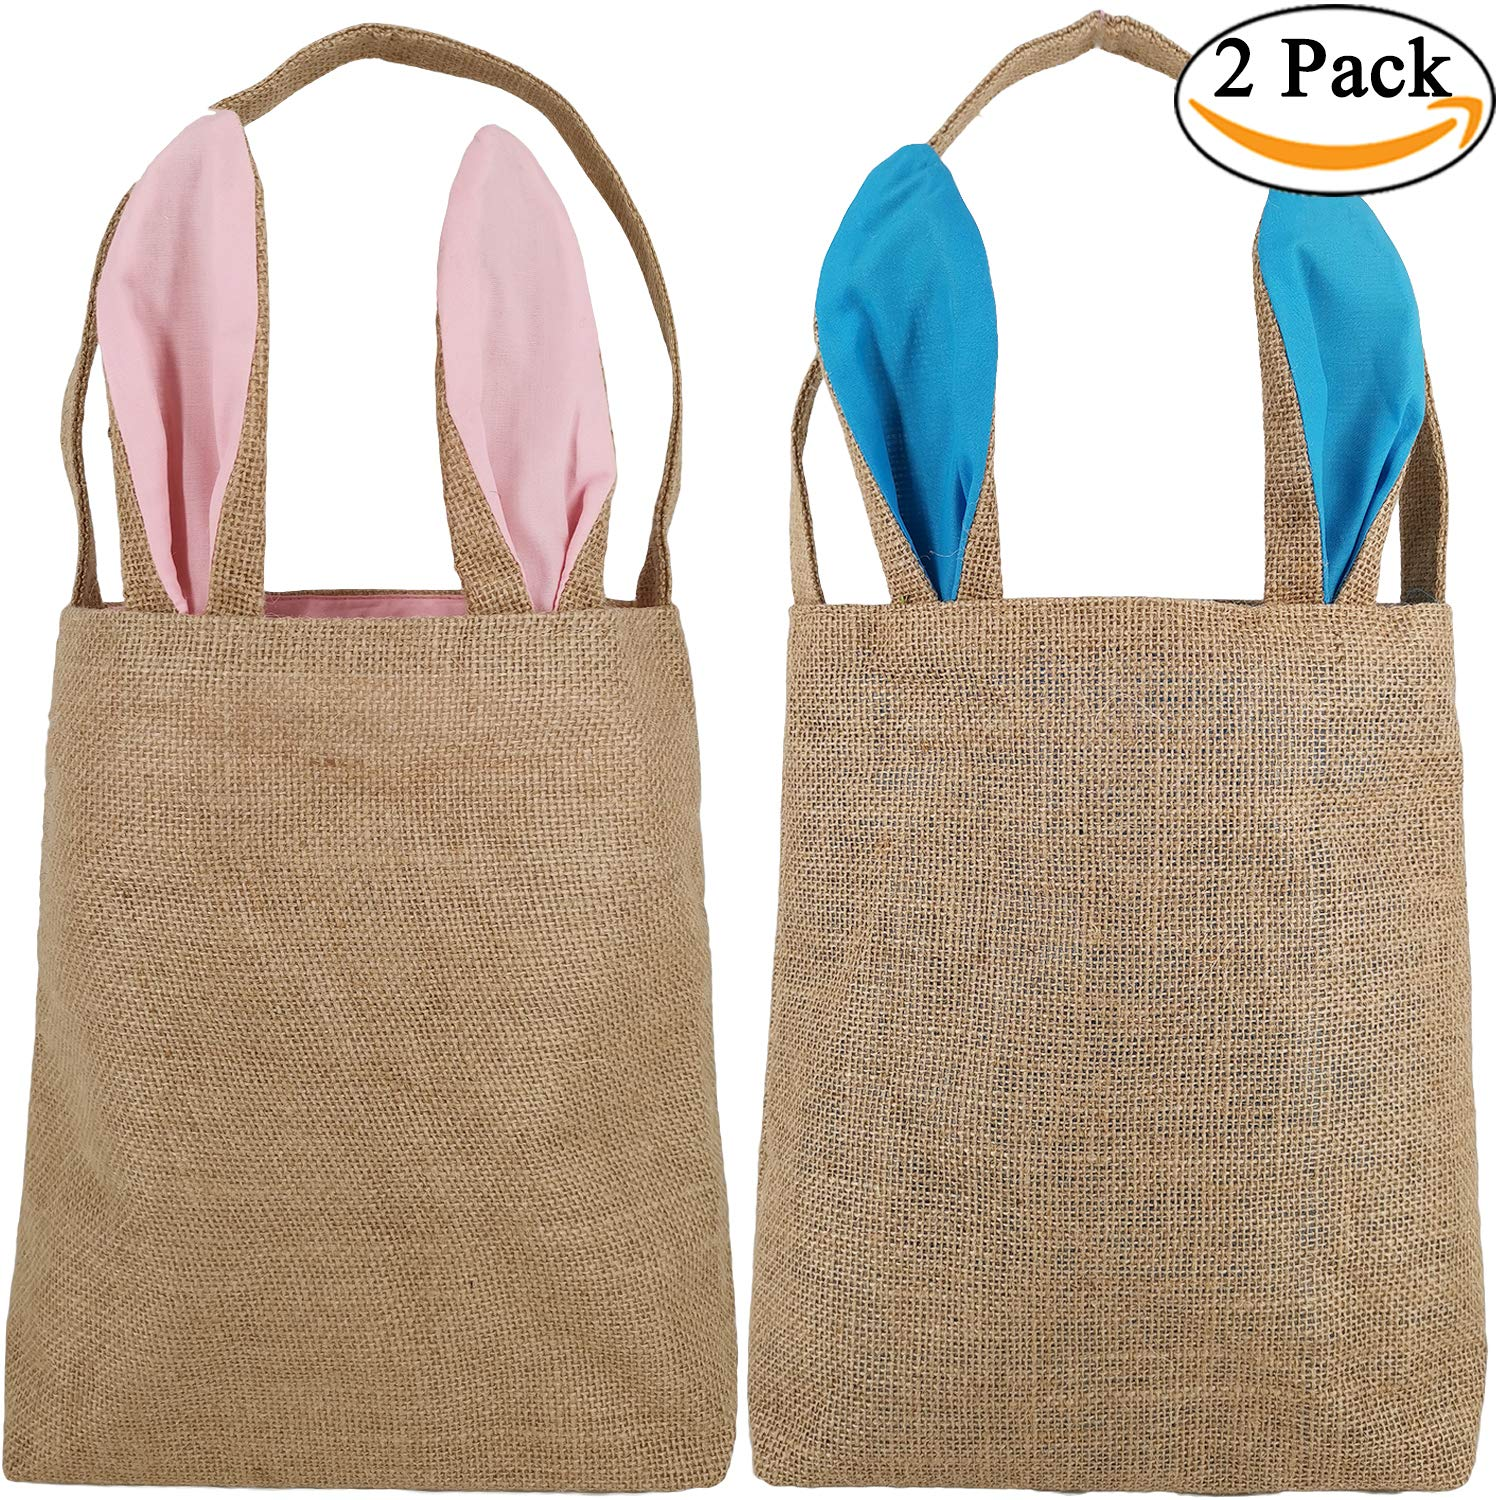 Easter Bunny Baskets for Kids with DIY Cross-Stitch Line, Personalized Bunny Ears Tote Bags Perfect for Easter to Carry Eggs Gifts (2 Pack, Pink + Blue) Y047A